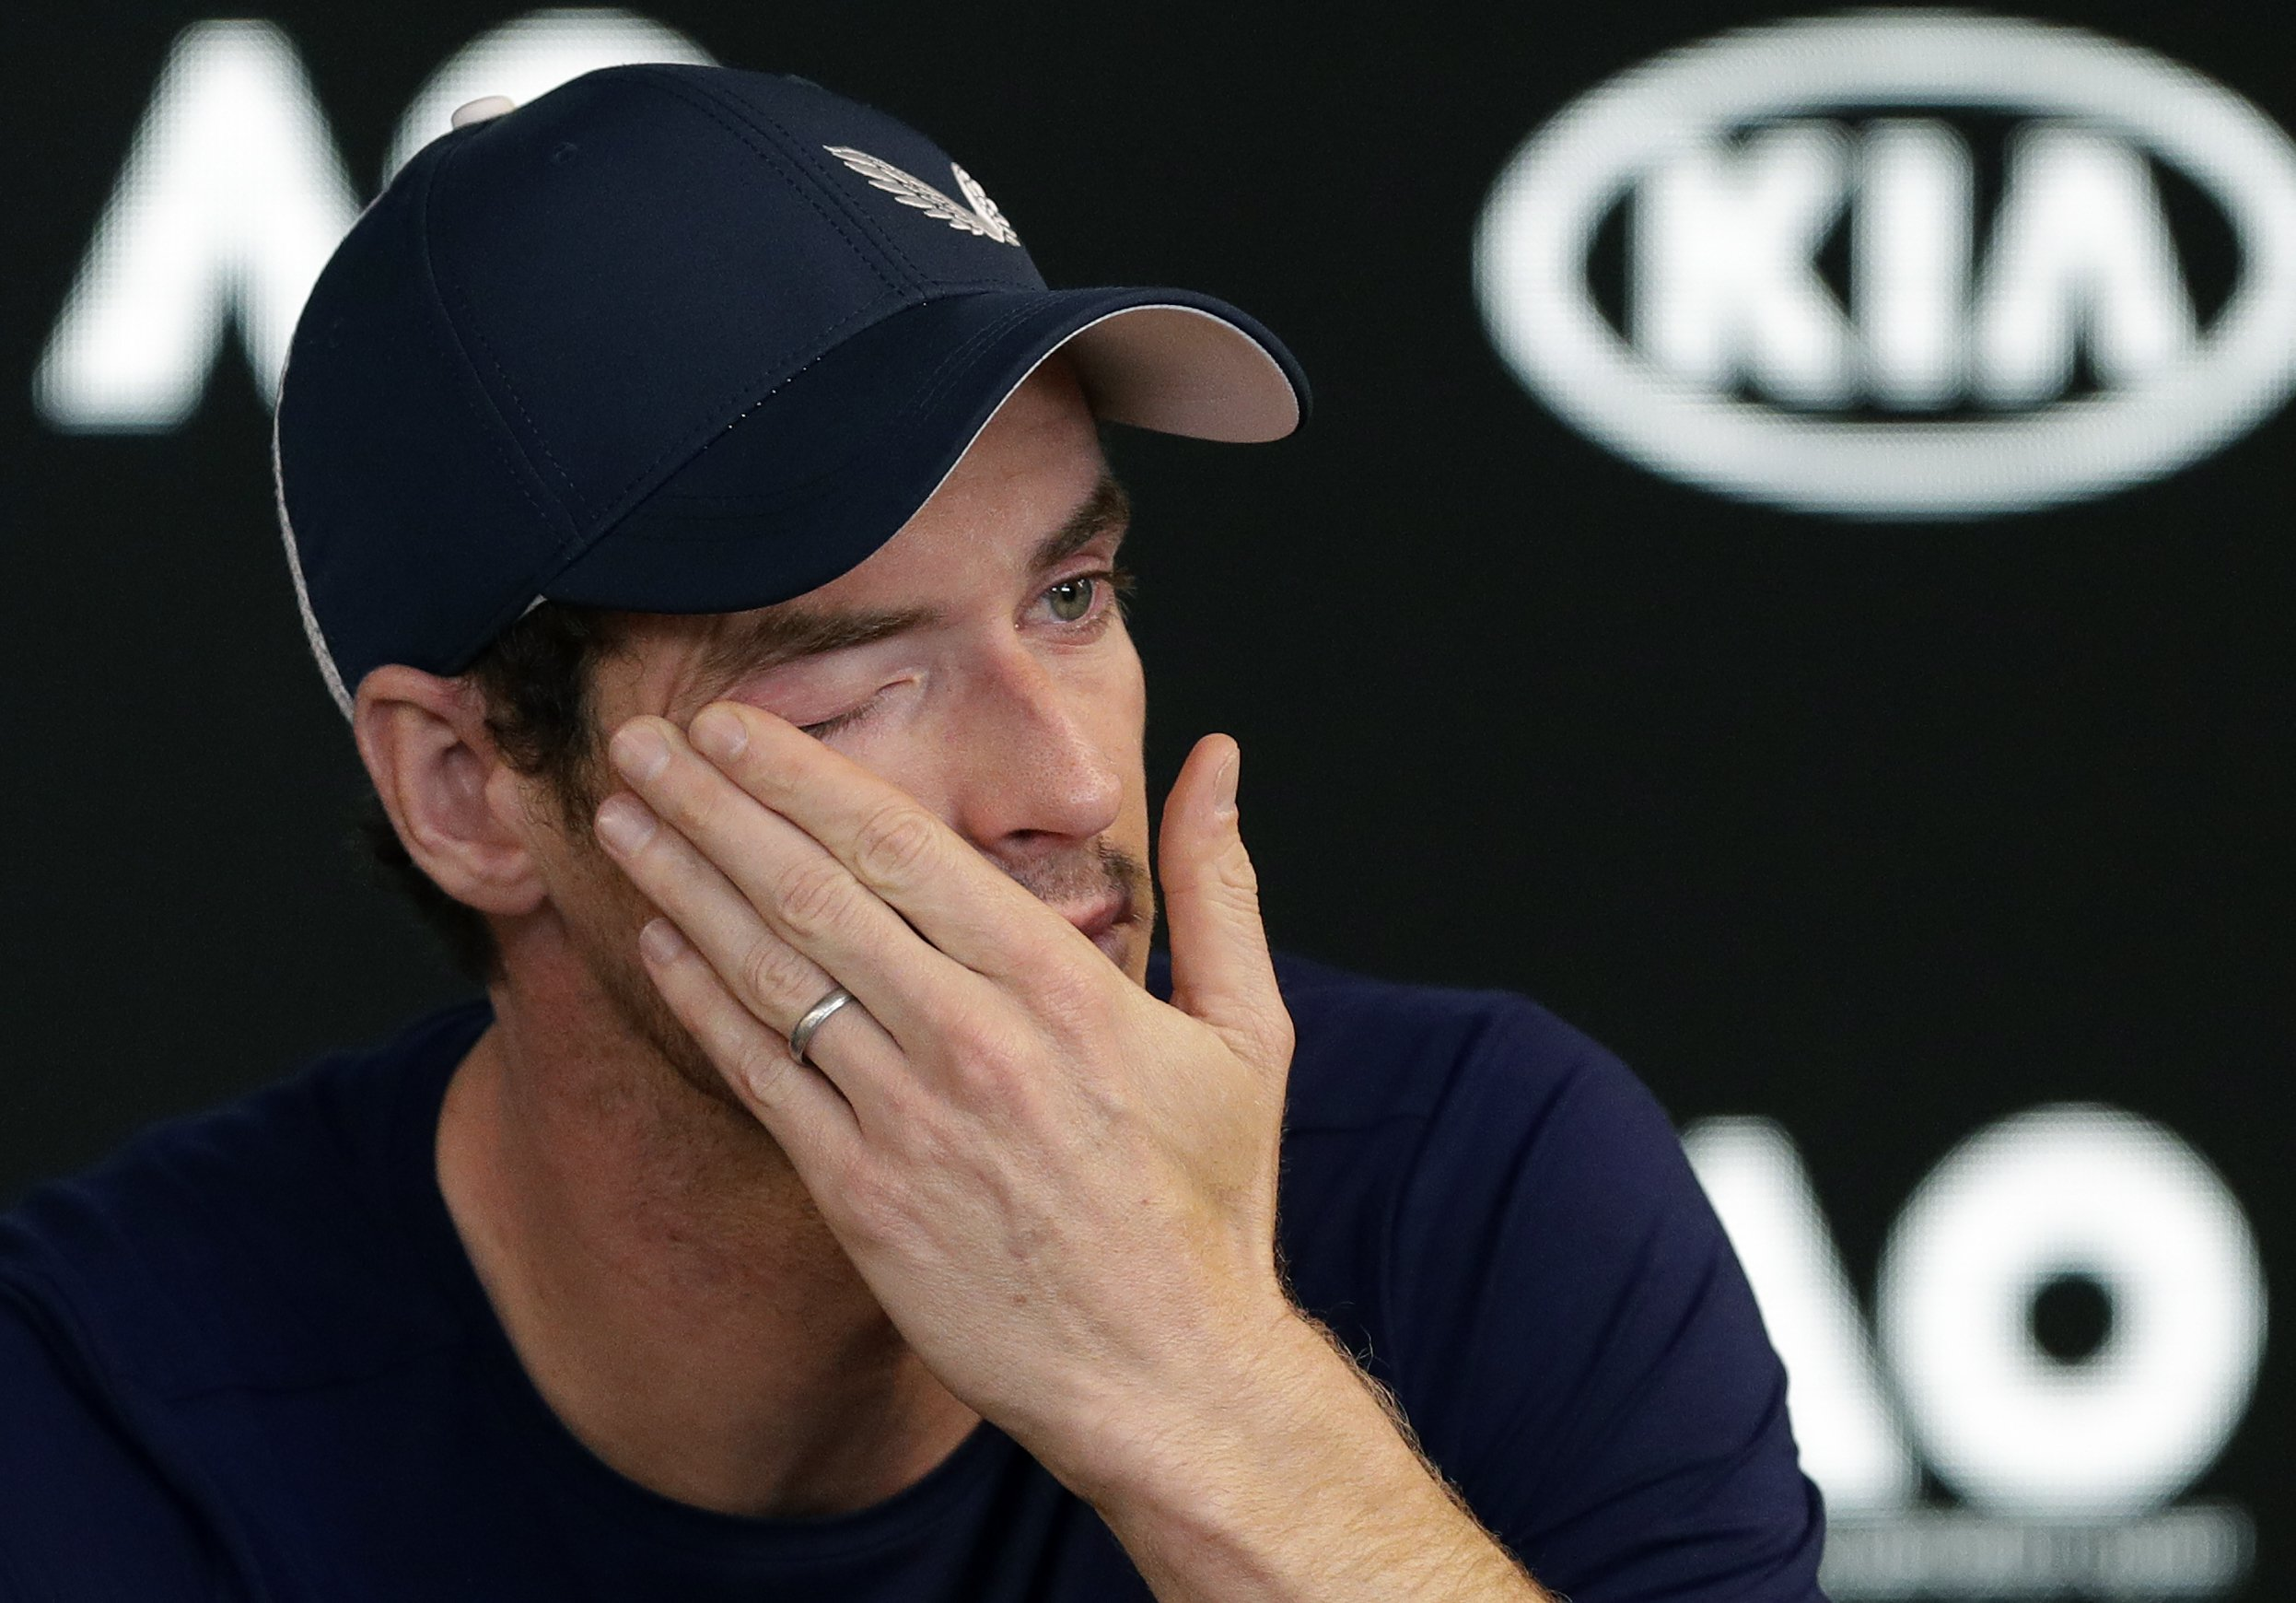 Britain's Andy Murray wipes tears from his face during a press conference at the Australian Open tennis championships in Melbourne, Australia, Friday, Jan. 11, 2019. A tearful Murray says the Australian Open could be his last tournament because of a hip injury that has hampered him for almost two years.(AP Photo/Mark Baker)